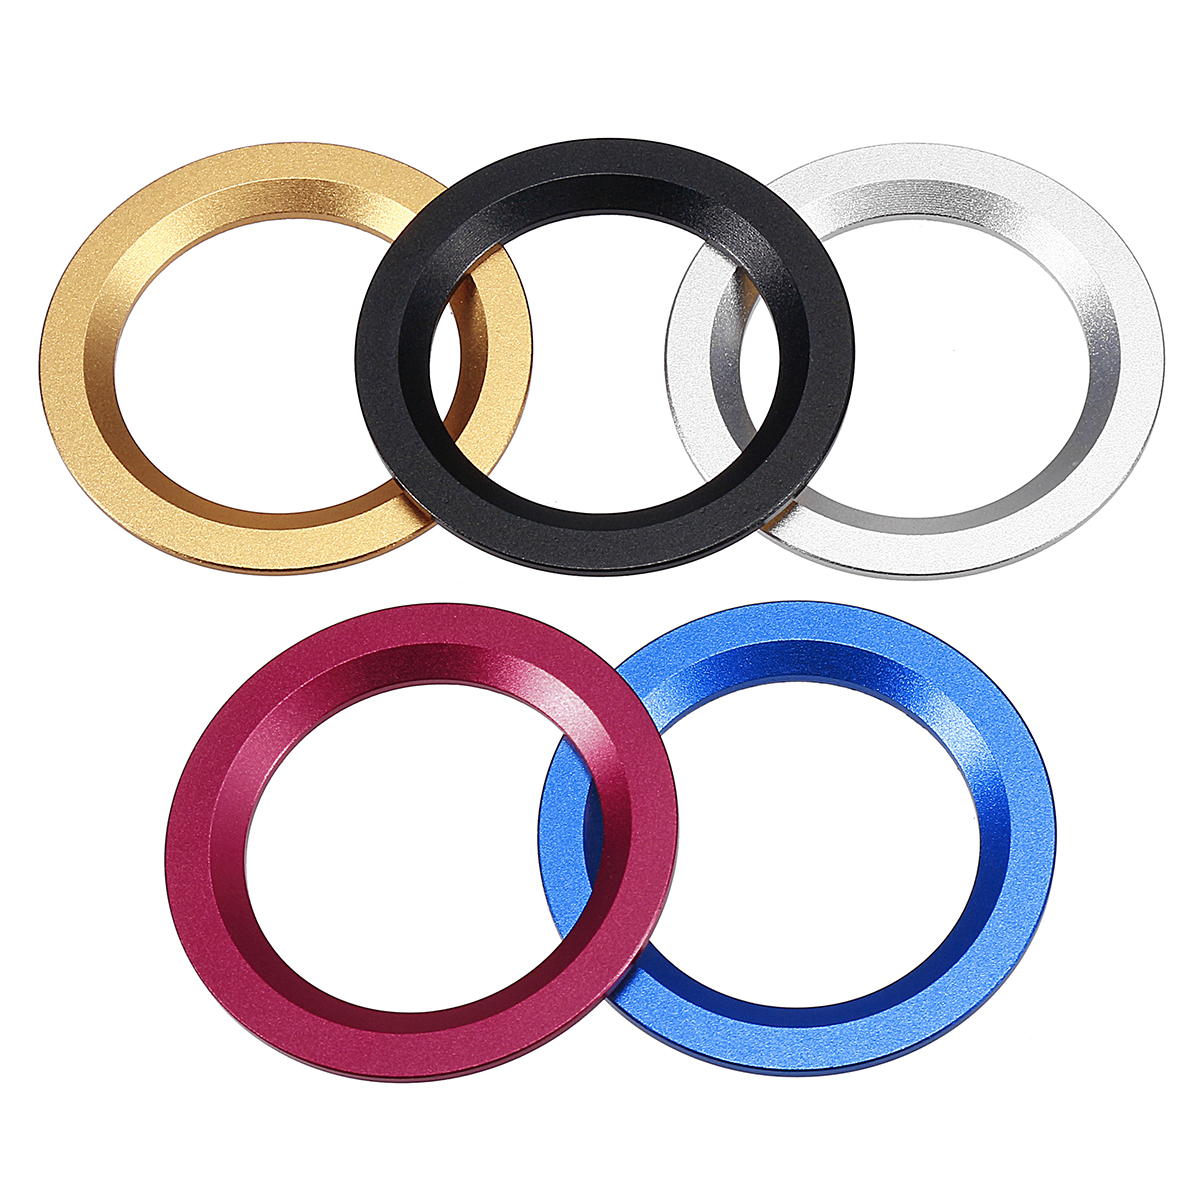 1Pcs Engine Start Button Cover Cap Decor Ring Trim Aluminum Alloy for TOYOTA/Ford/Cadillac